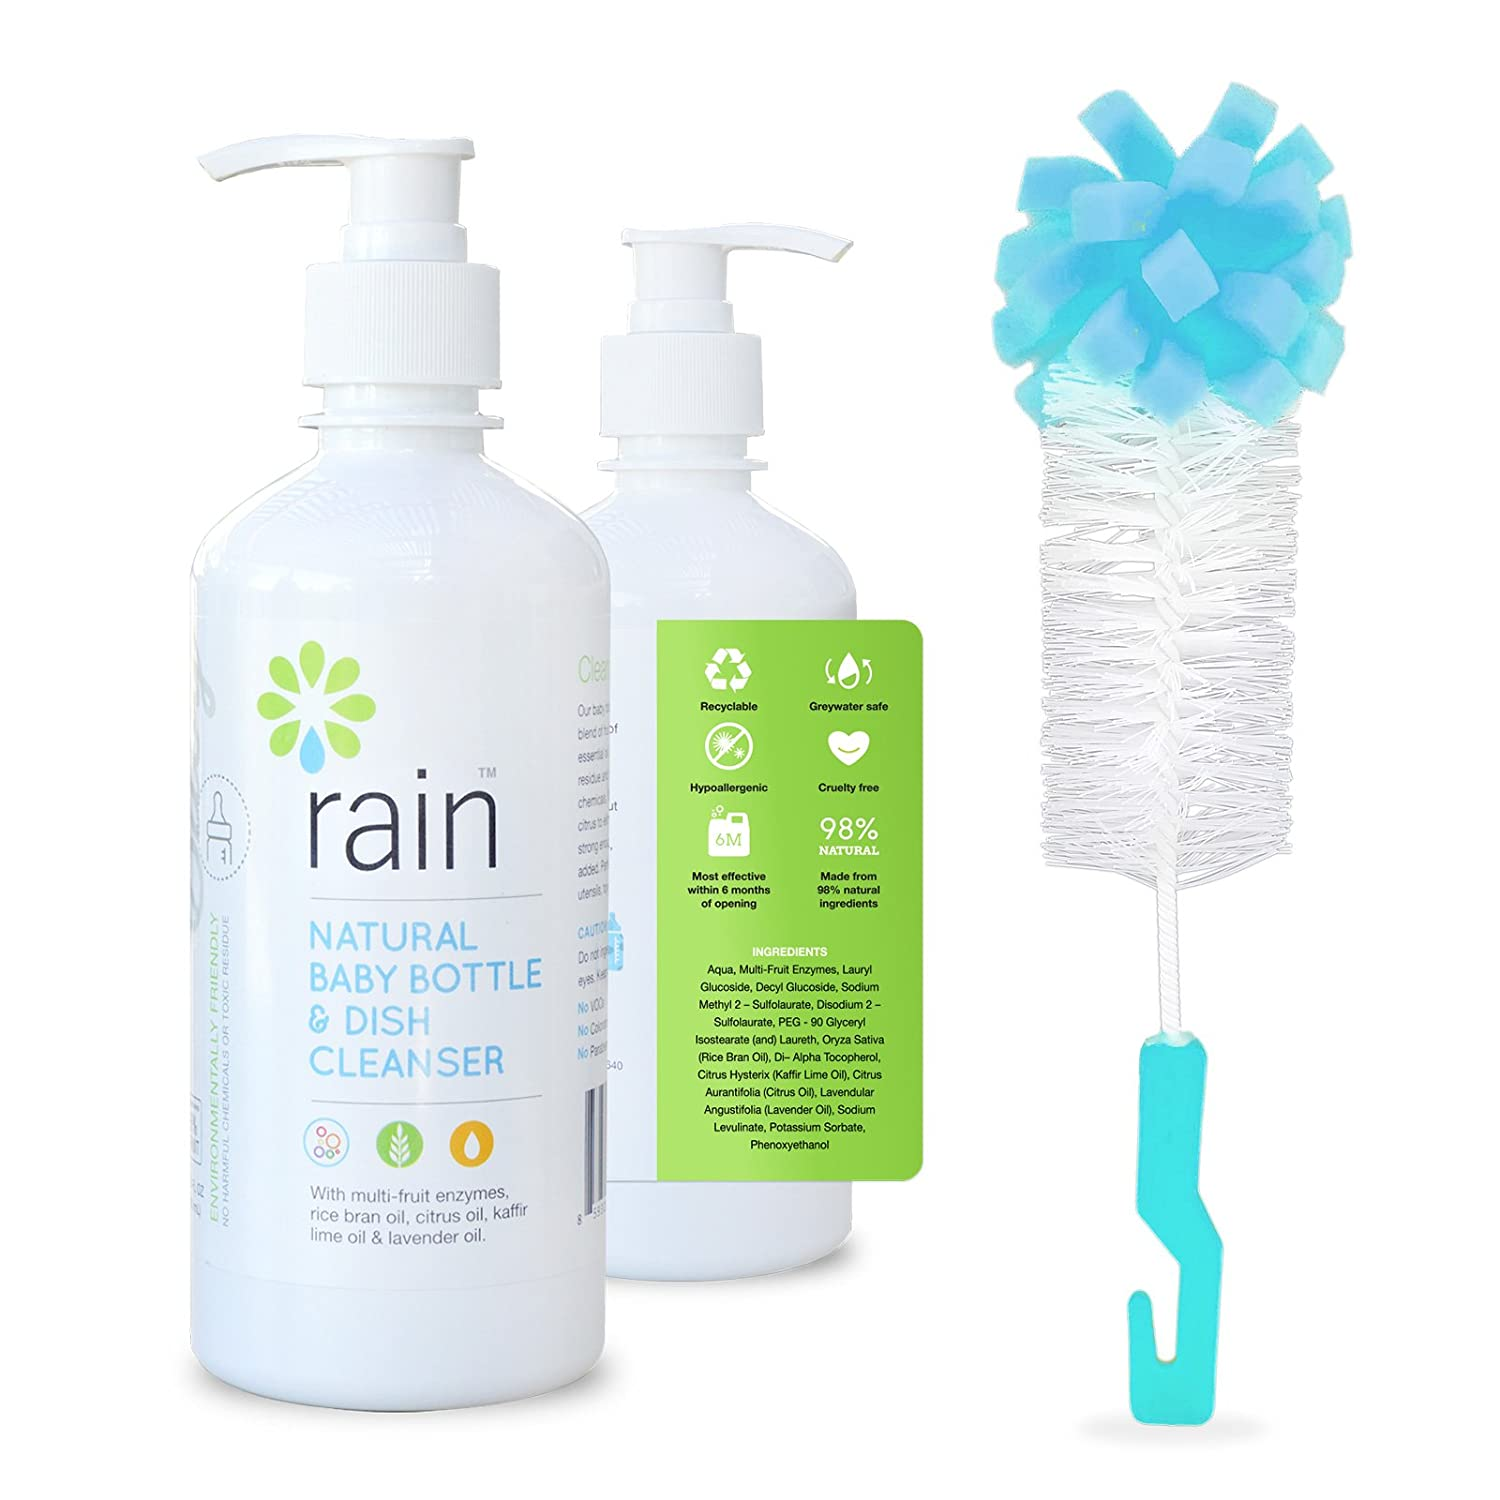 Baby Bottle Dish Soap Cleaner by Rain